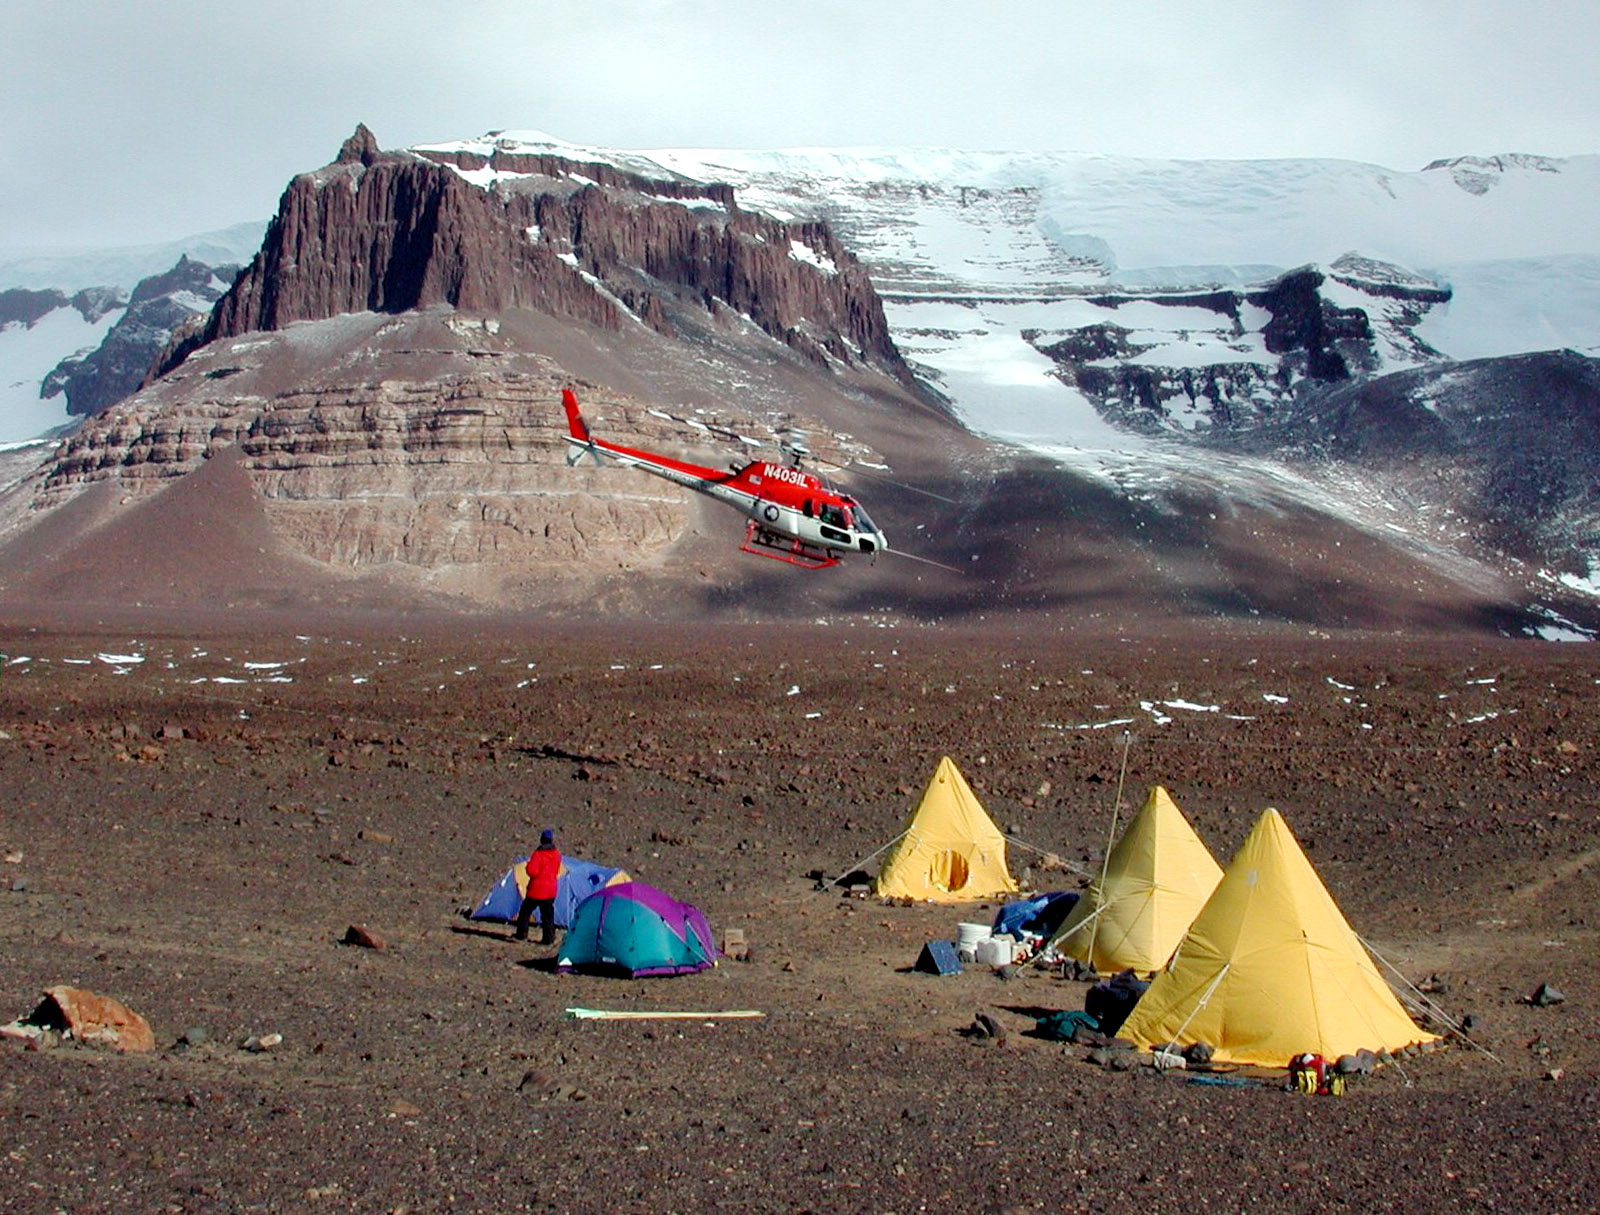 Helicopter approaches several tents on a rocky landscape.